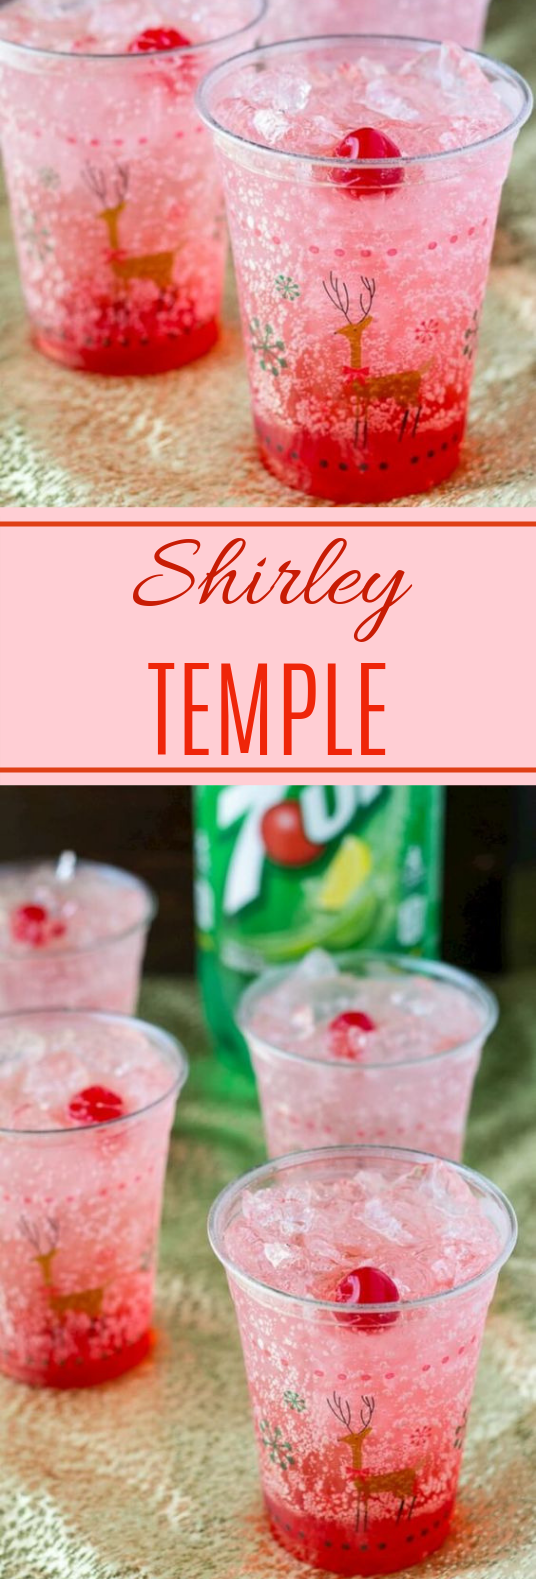 Shirley Temple #holidaydrink #kidfriendly